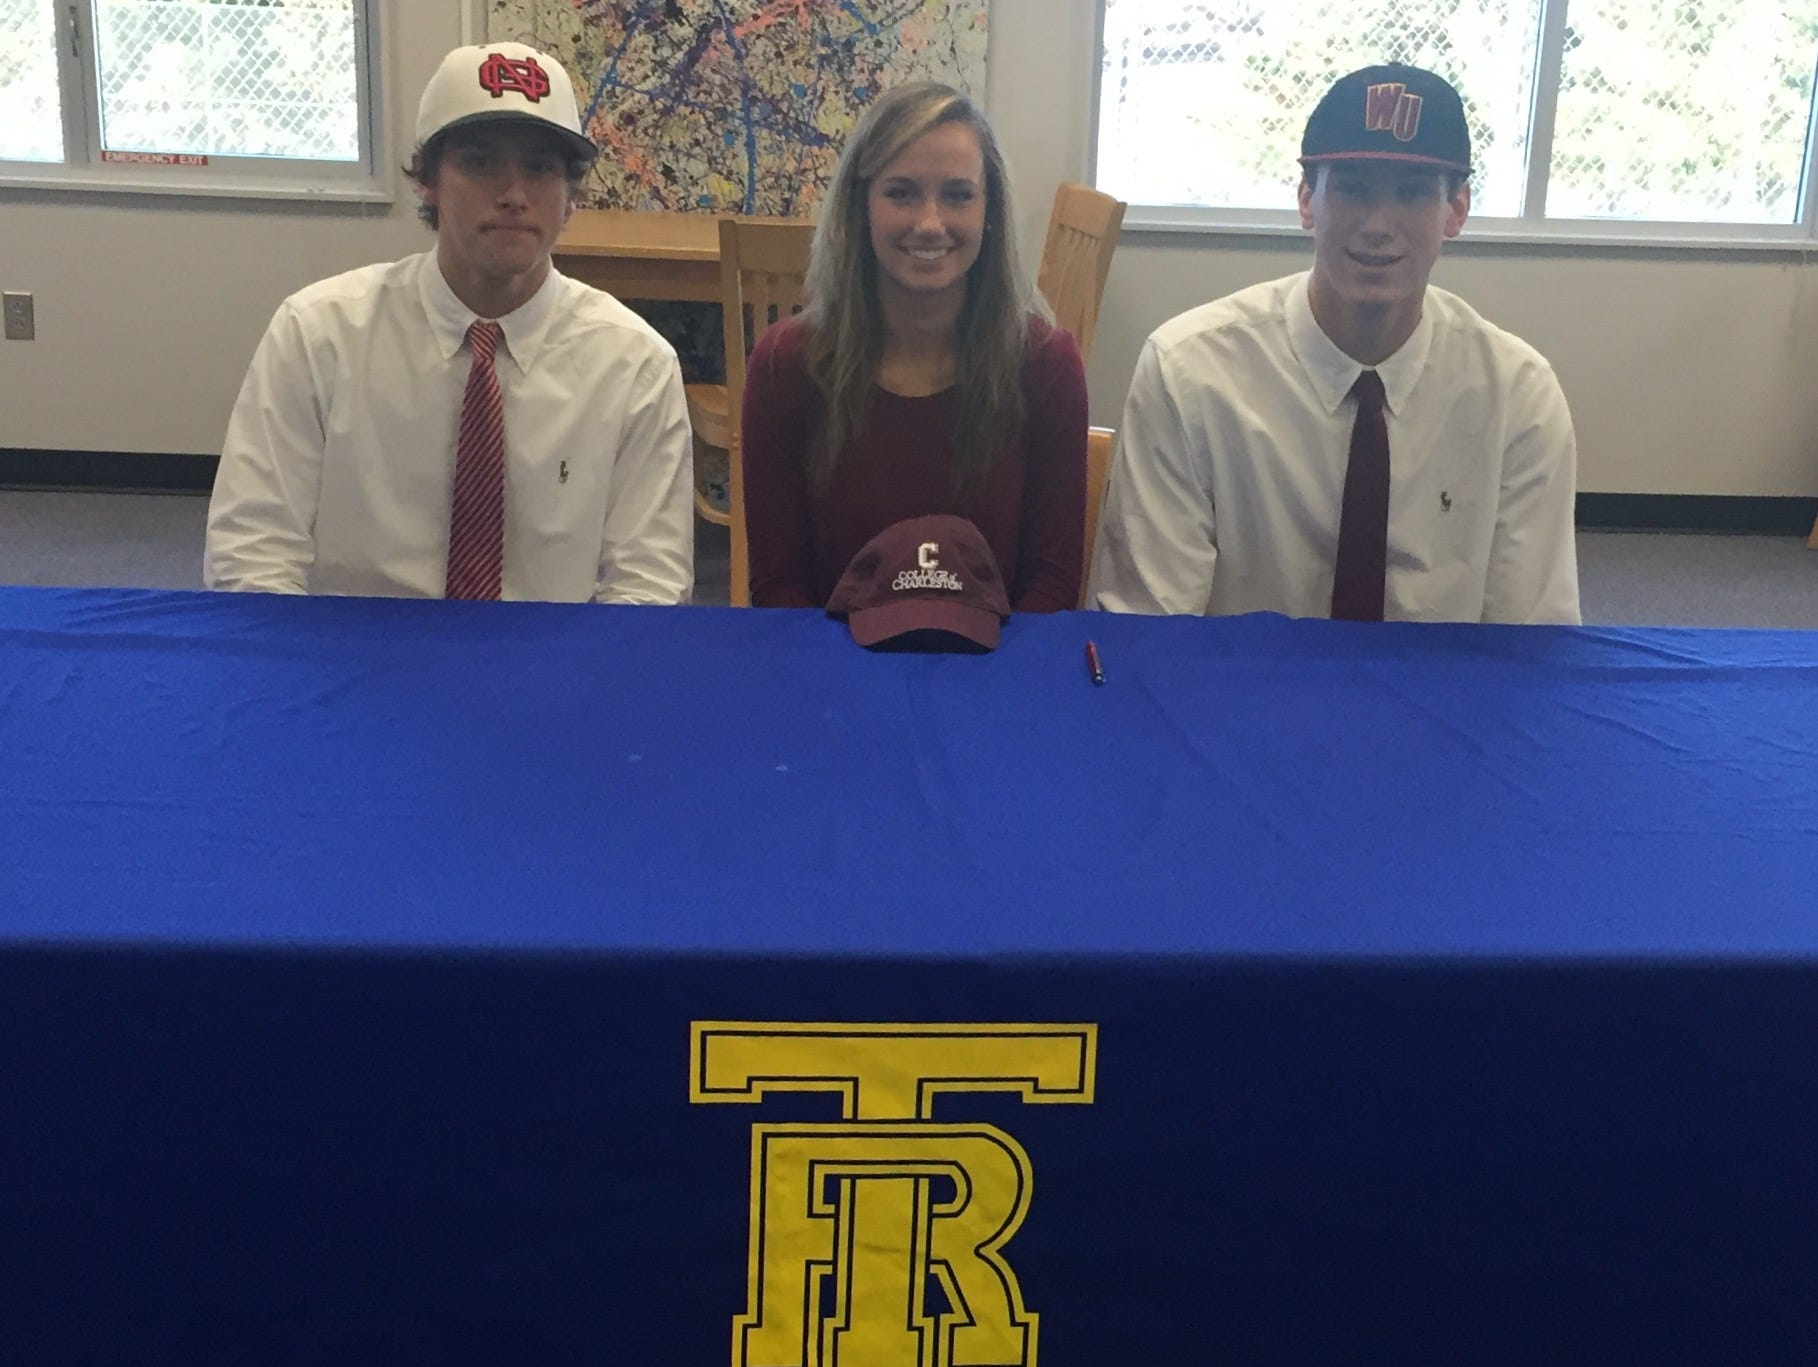 At Travelers Rest, from left, Parker Neff signed with North Greenville for baseball, Victoria Huskey with College of Charleston for golf and Jason Crumley with Winthrop for baseball.